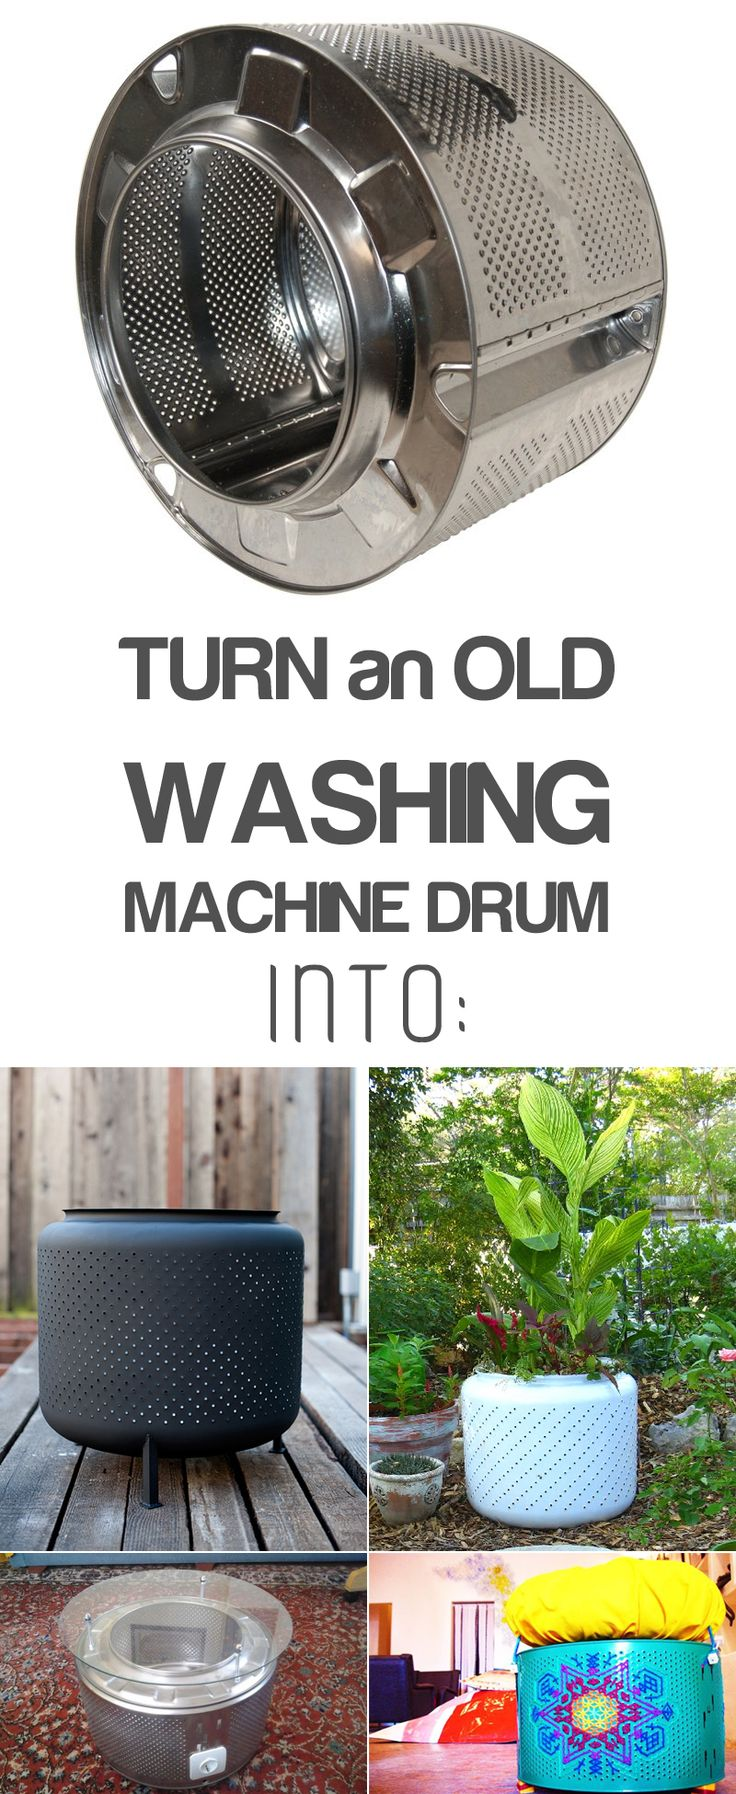 12 Creative Ways to Recycle Washing Machine Drums - New uses for a broken washing machine drums